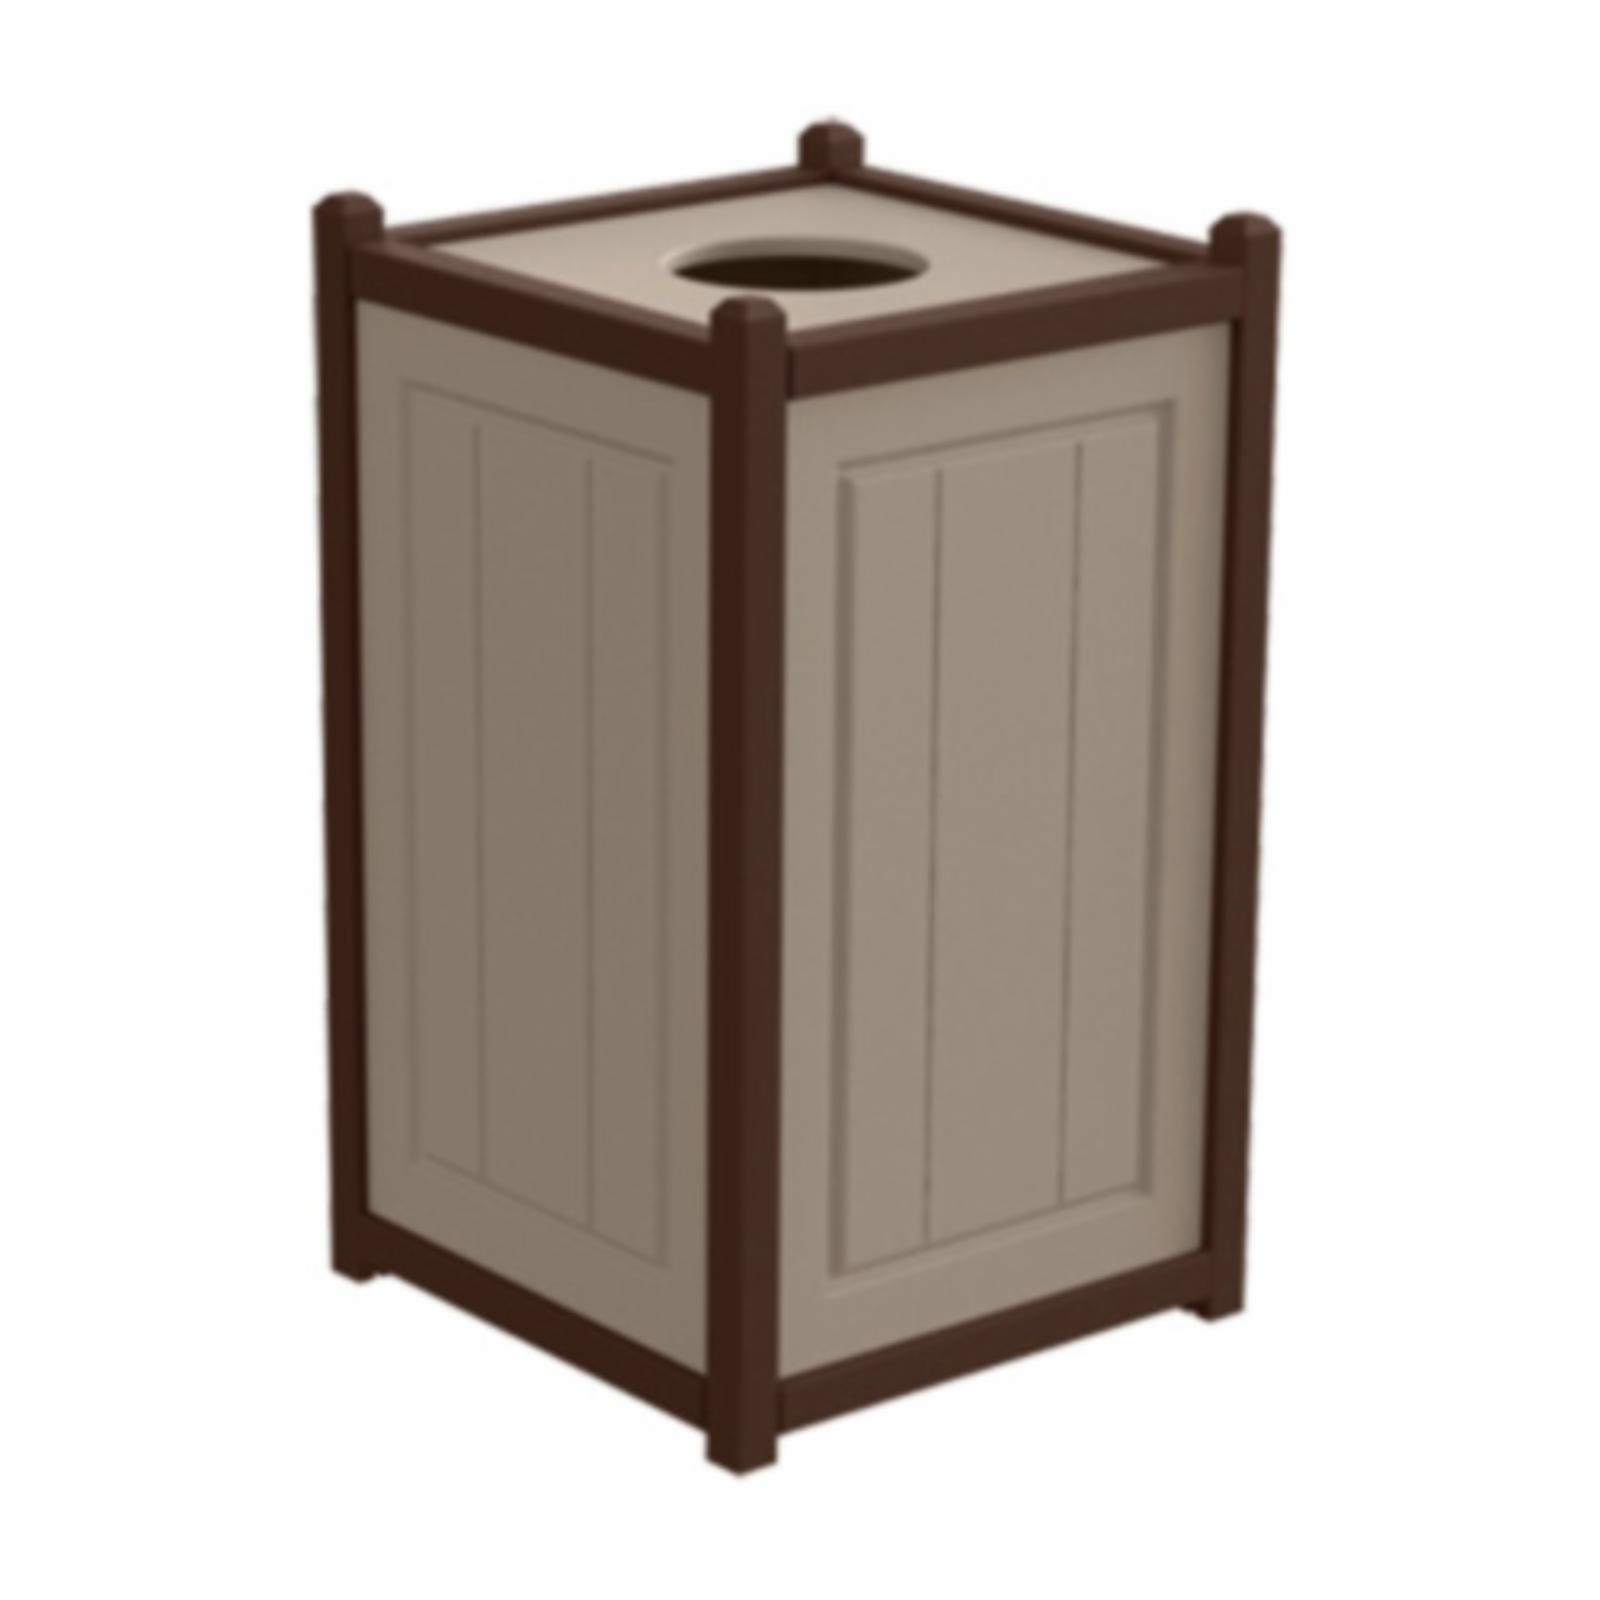 Treetop Products Two-Tone 33 Gallon Square Top Load Outdoor Trash Receptacle Desert Tan/Brown - 4ZK4759-DT/BN